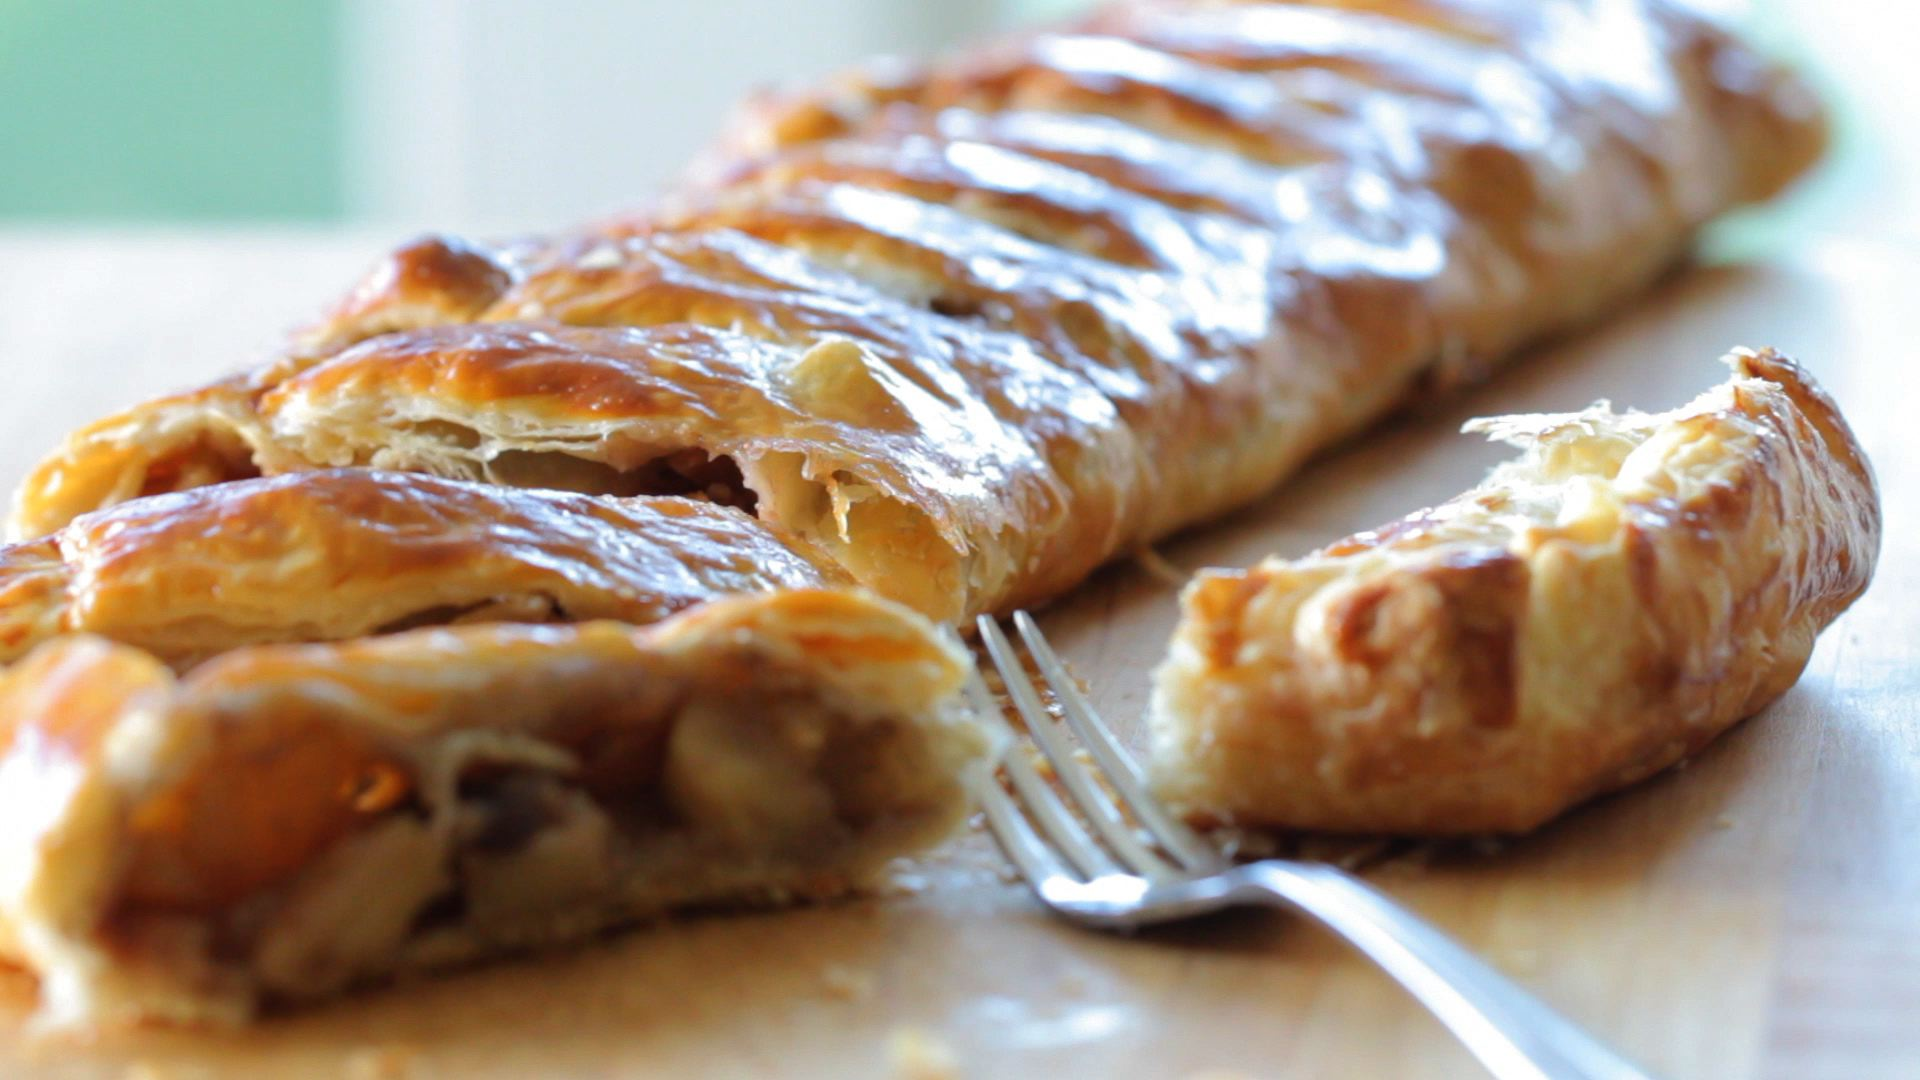 Apple strudel | Buona Pappa